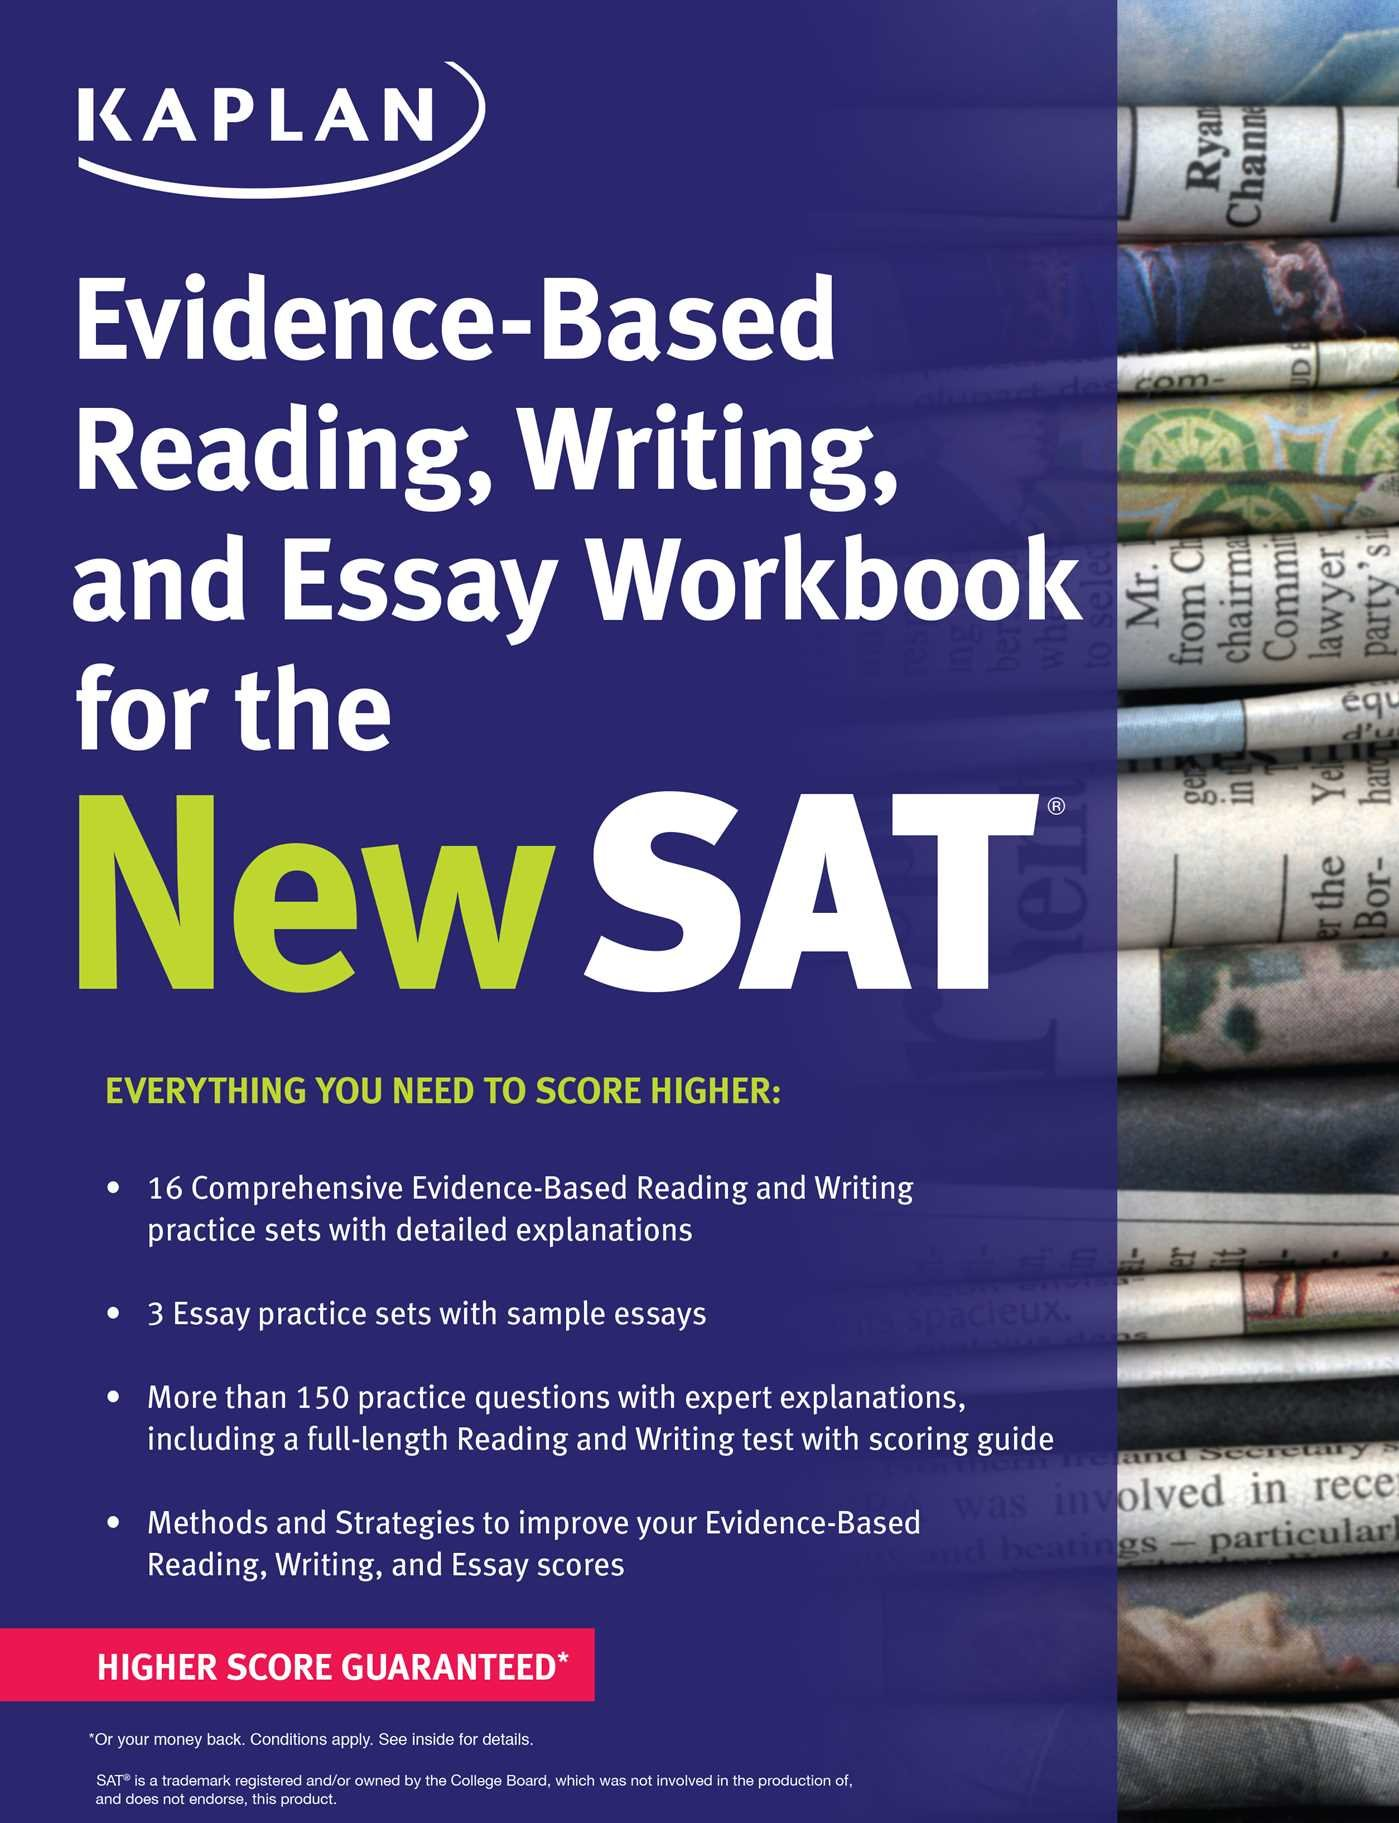 kaplan evidence based reading writing and essay workbook for the kaplan evidence based reading writing and essay workbook for the new sat kaplan test prep kaplan test prep 9781625231574 amazon com books